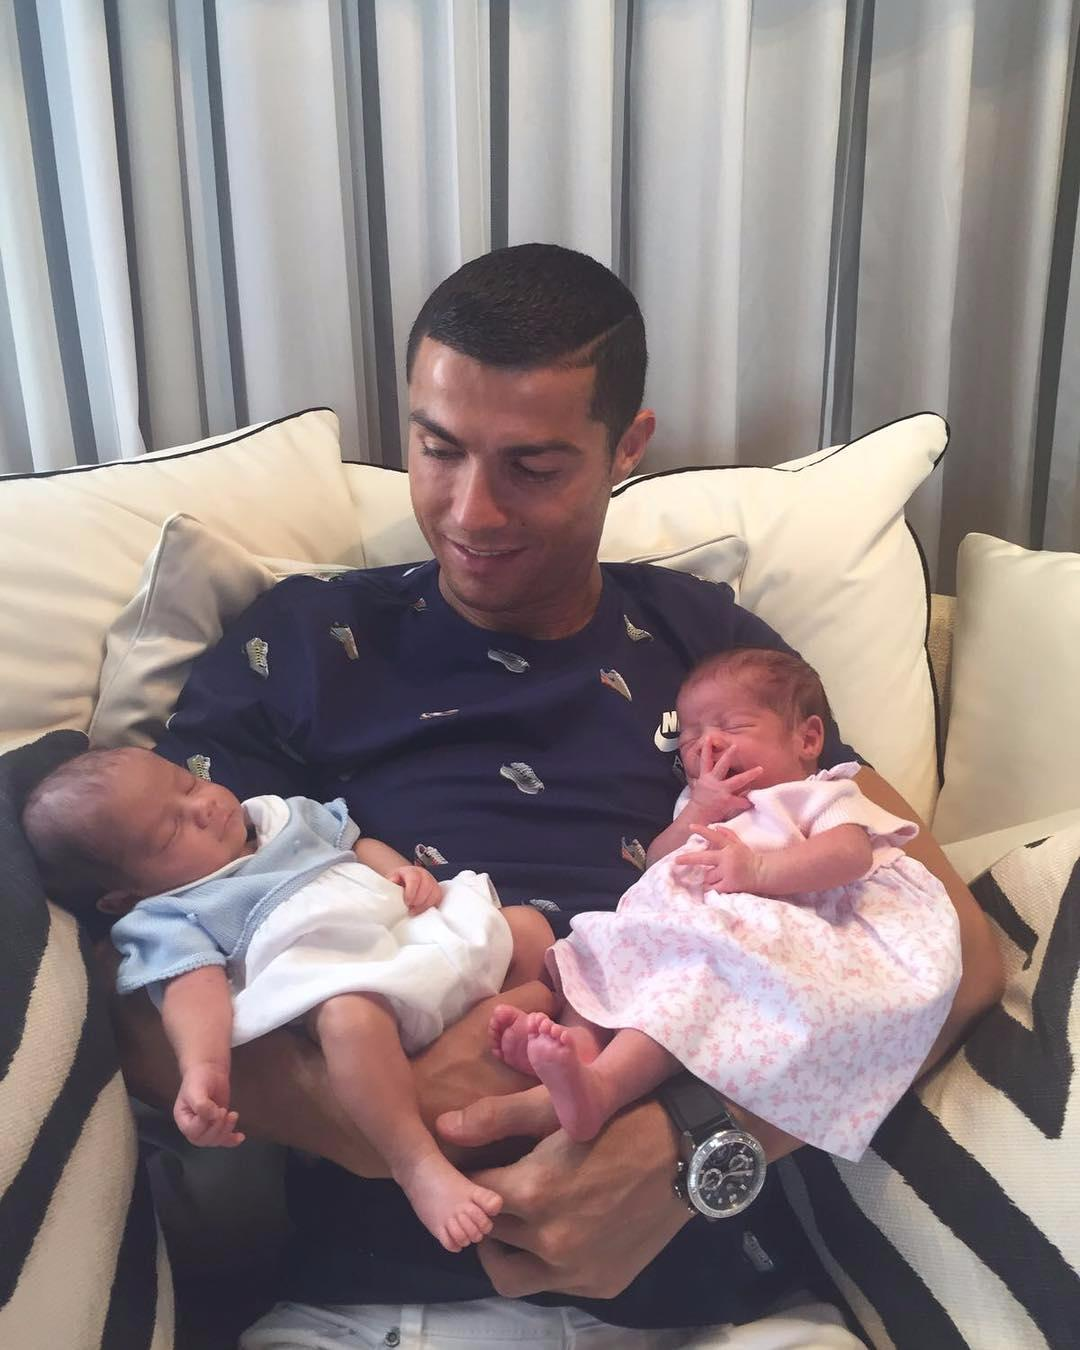 Ronaldo also has twins as well as son Cristiano Jr